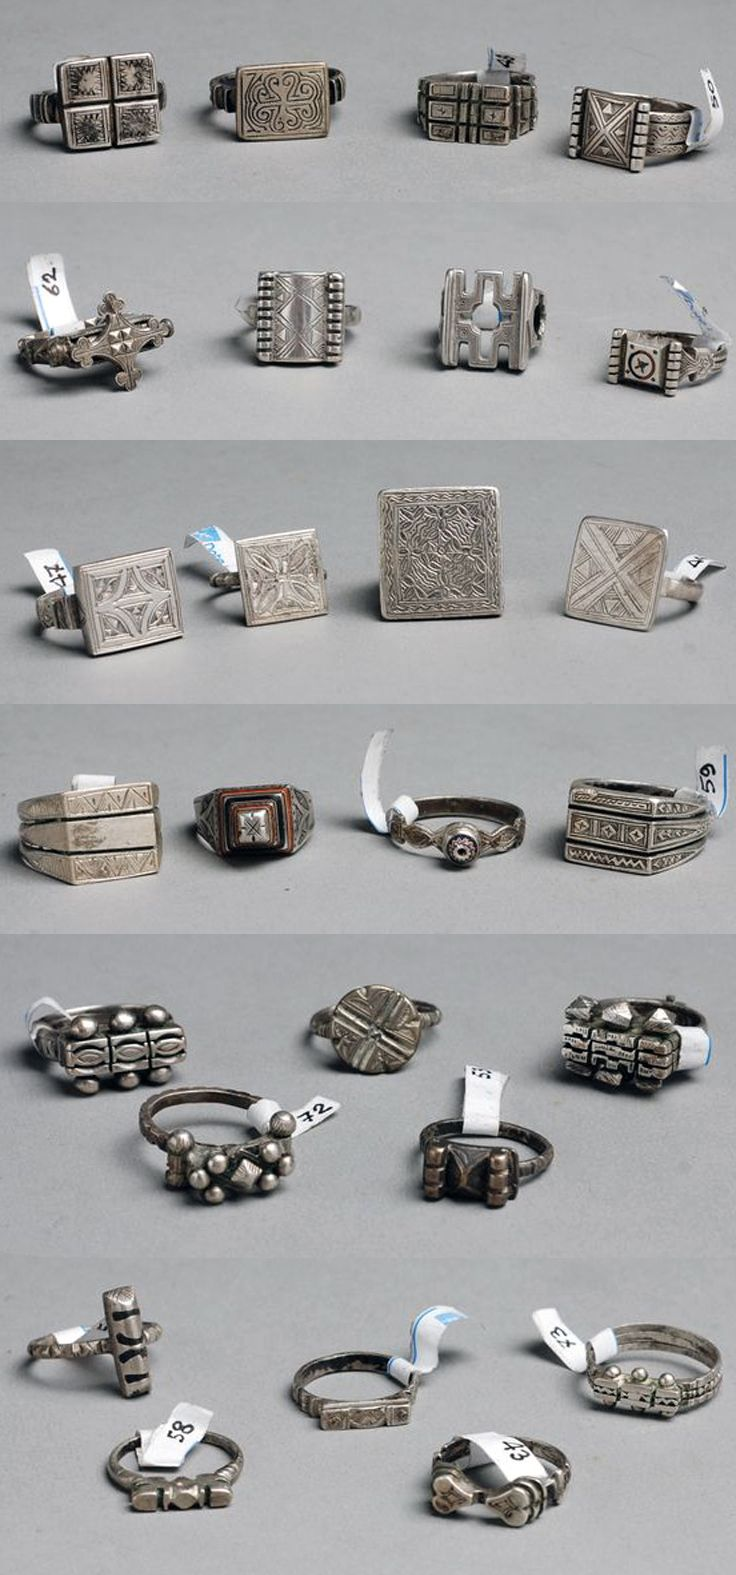 Mauritania | 26 Rings; silver | Prices top to bottom row; 65€, 70 €, 100 €, 40 €, 70 € and 45 € ~ all sold (Sept '11)